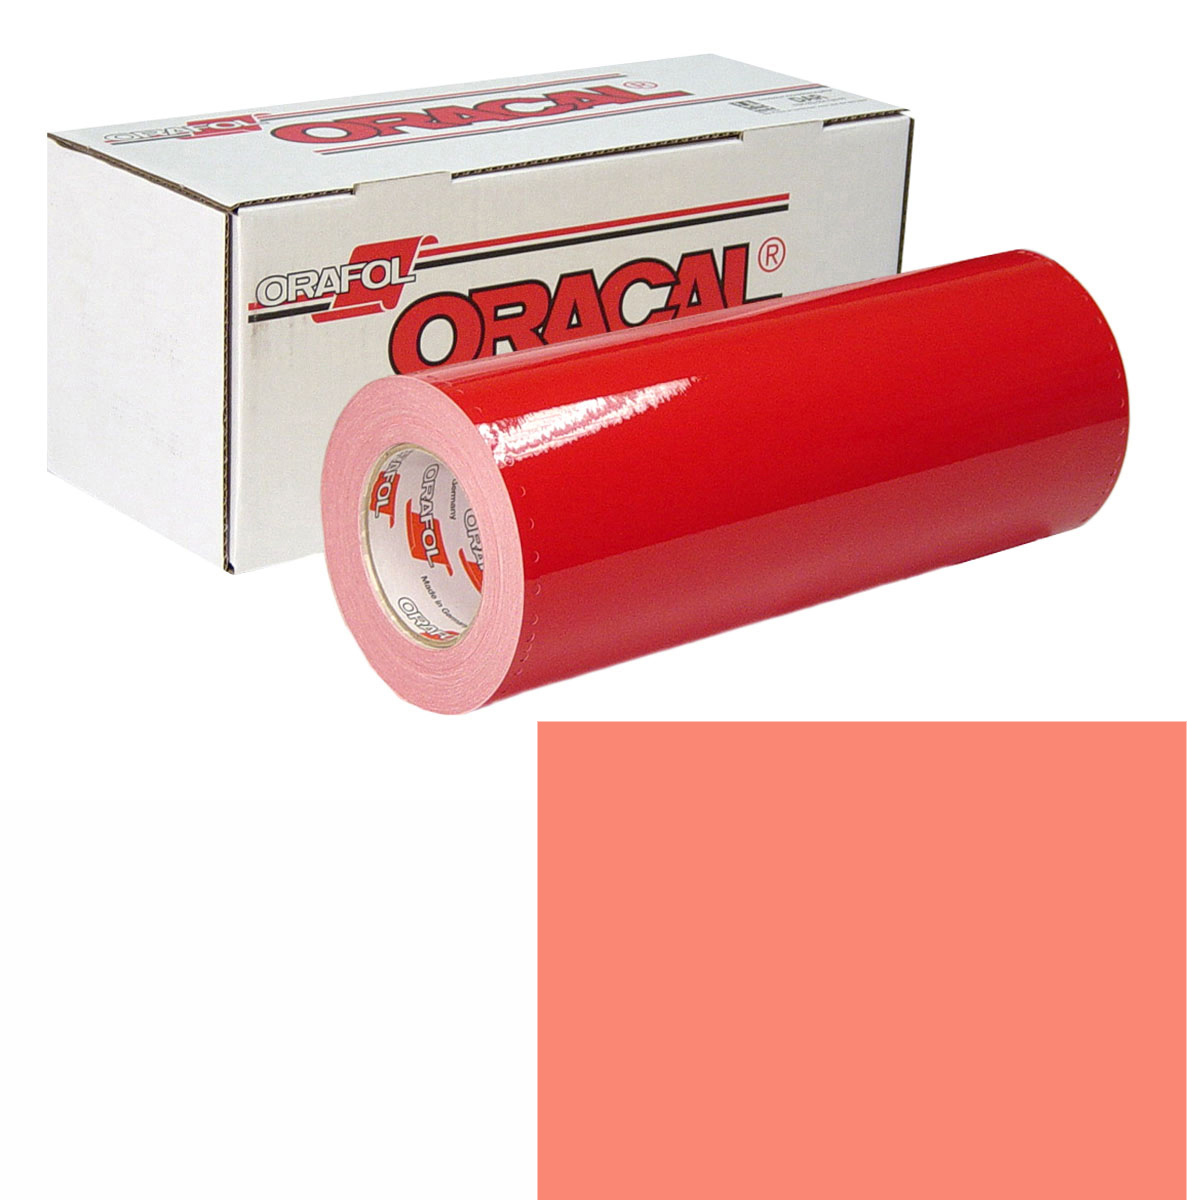 ORACAL 951 30In X 10Yd 341 Coral